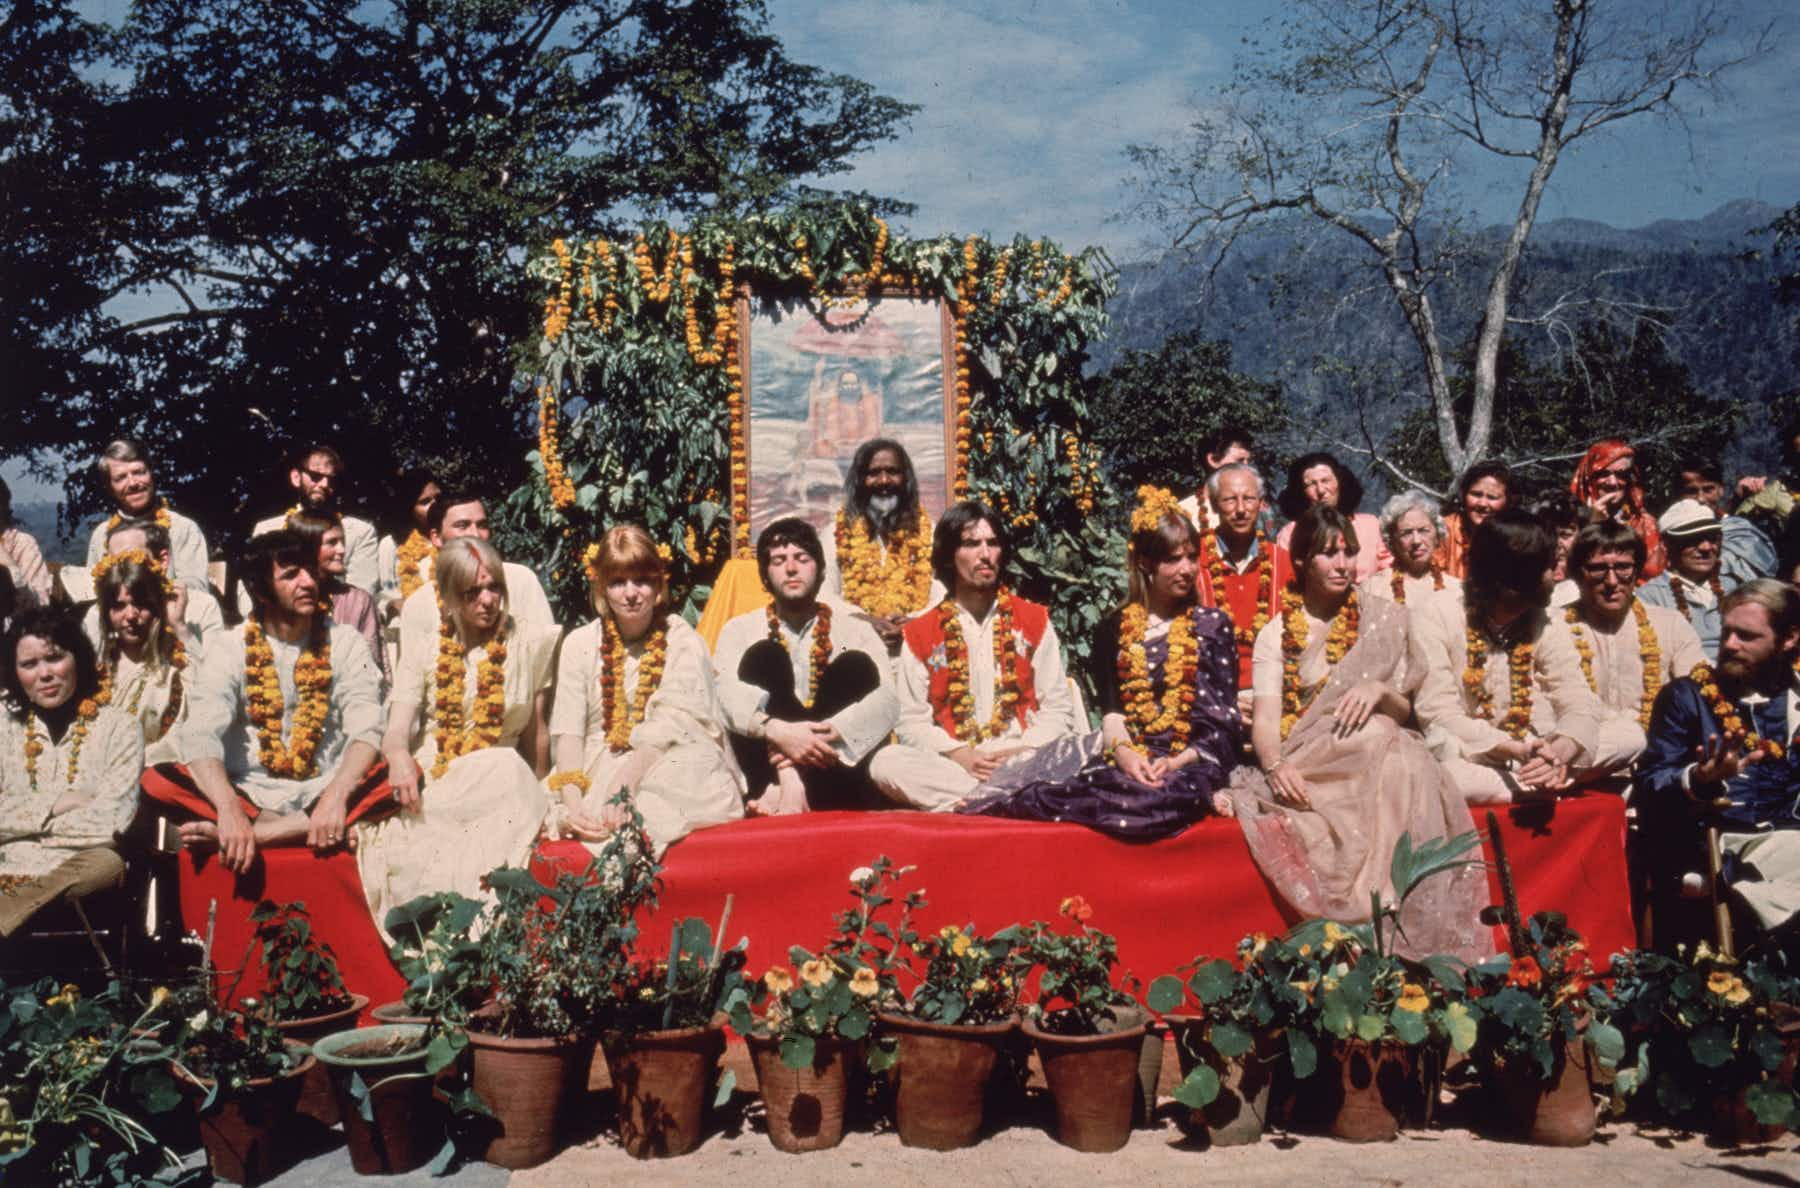 Beatles fans can soon stay at the Indian ashram that inspired the White Album